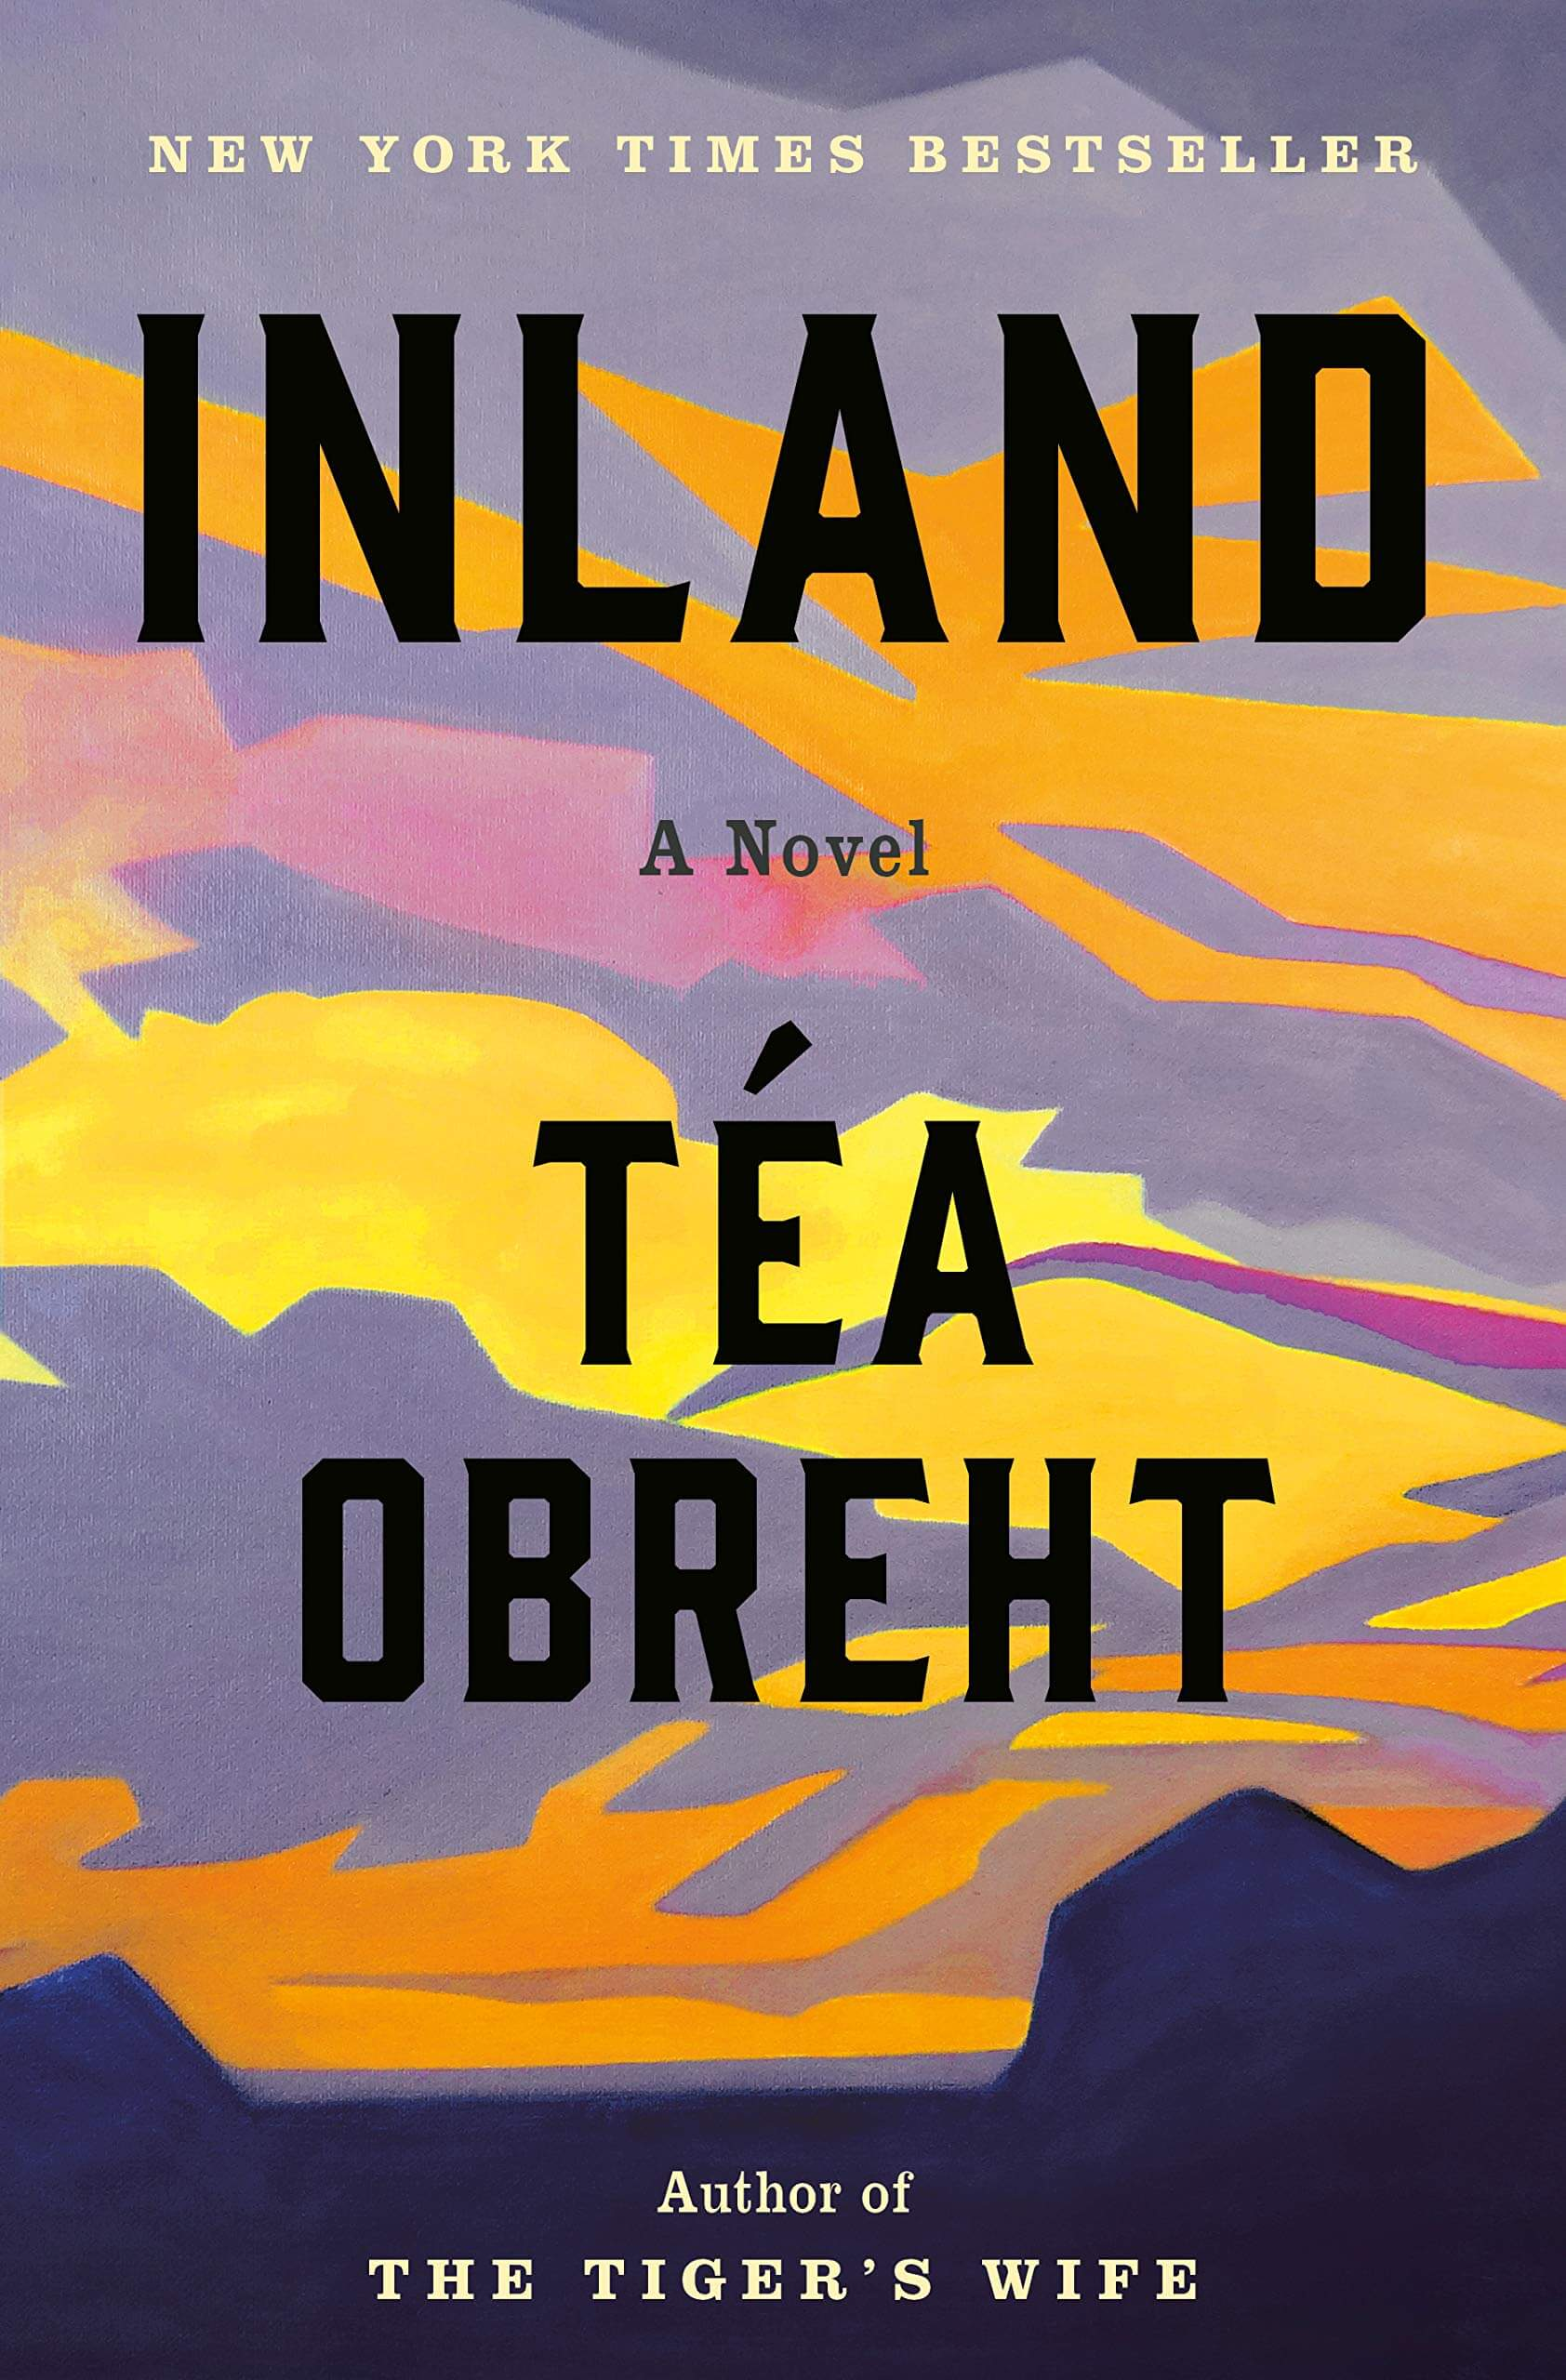 Inland book cover image